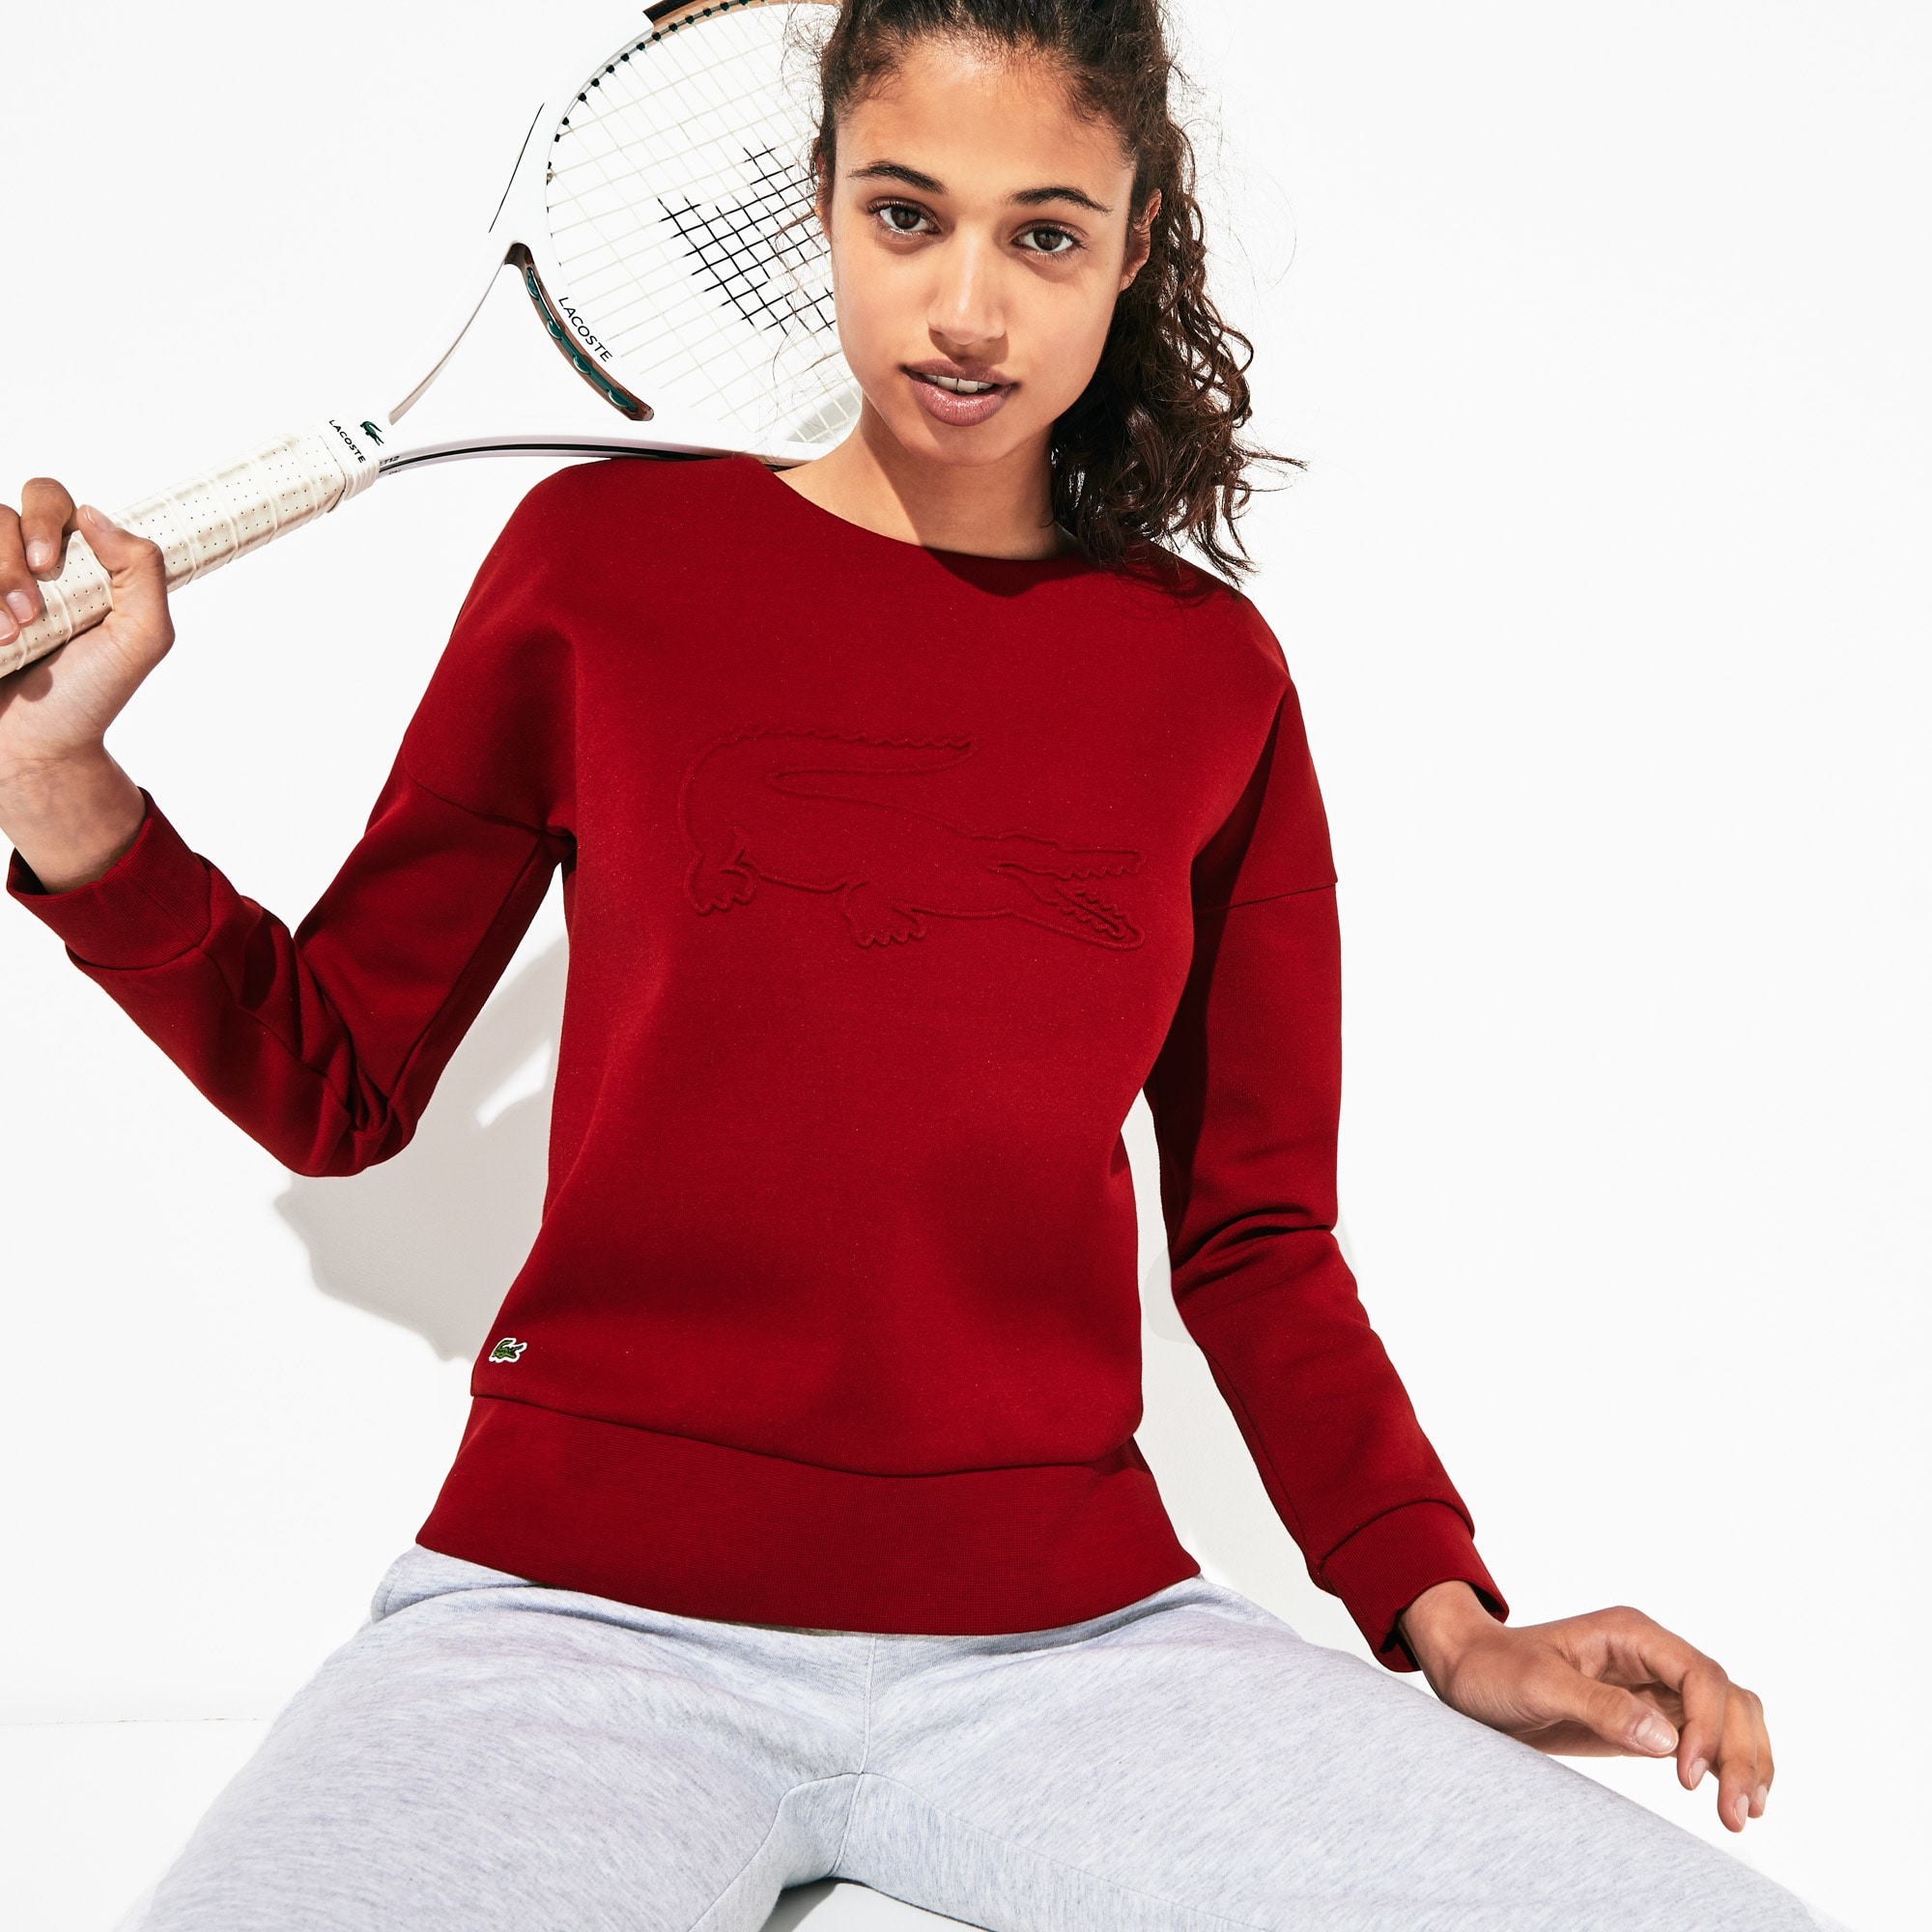 Women's SPORT Oversize Croc Cotton-Blend Sweatshirt